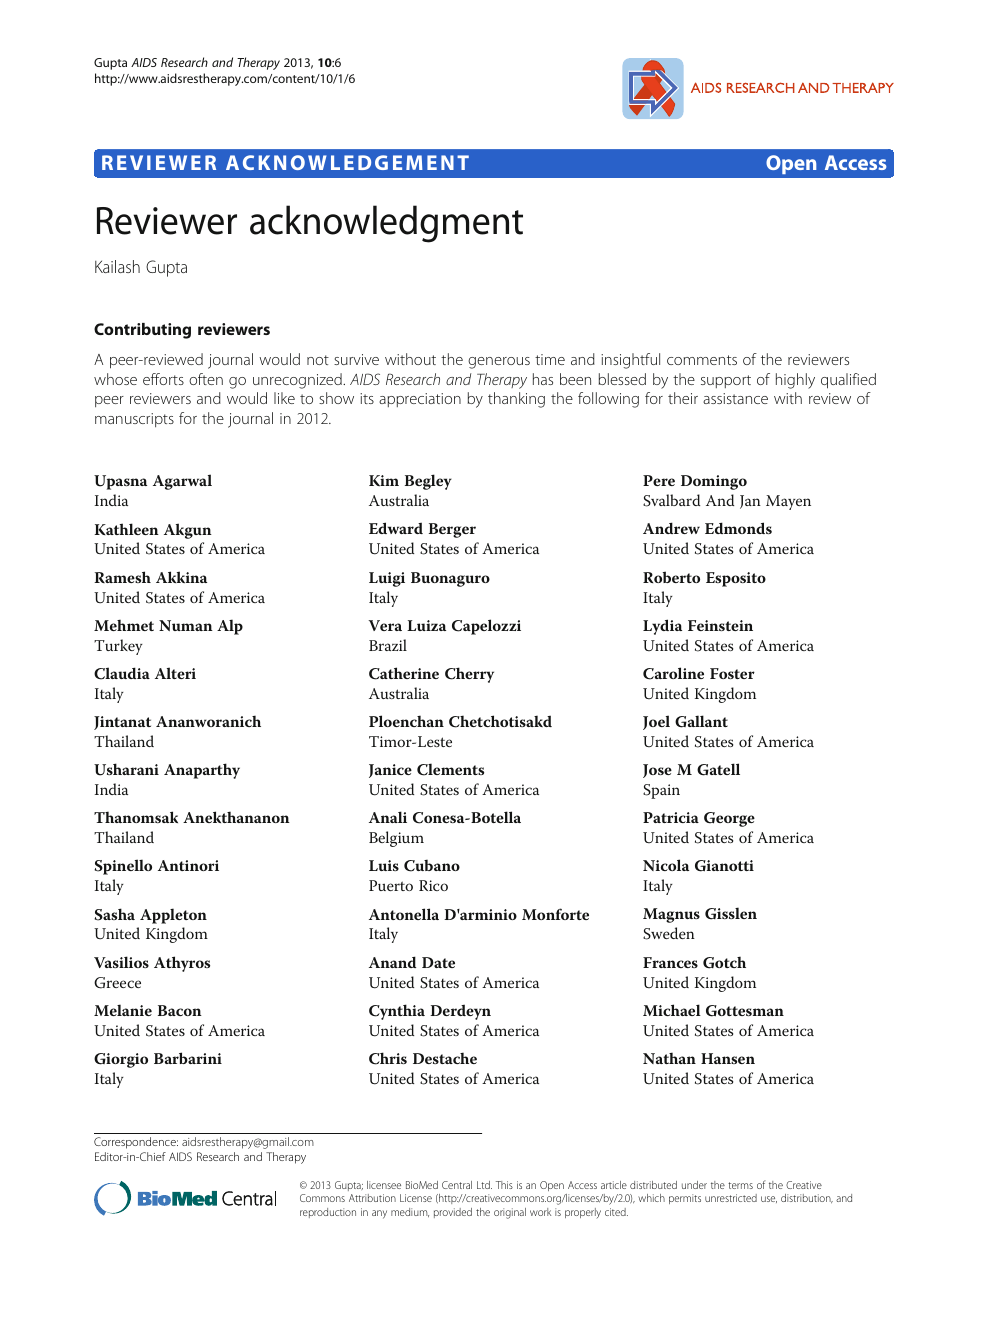 007 Acknowledgement Example For Research Paper Rare Pdf Full